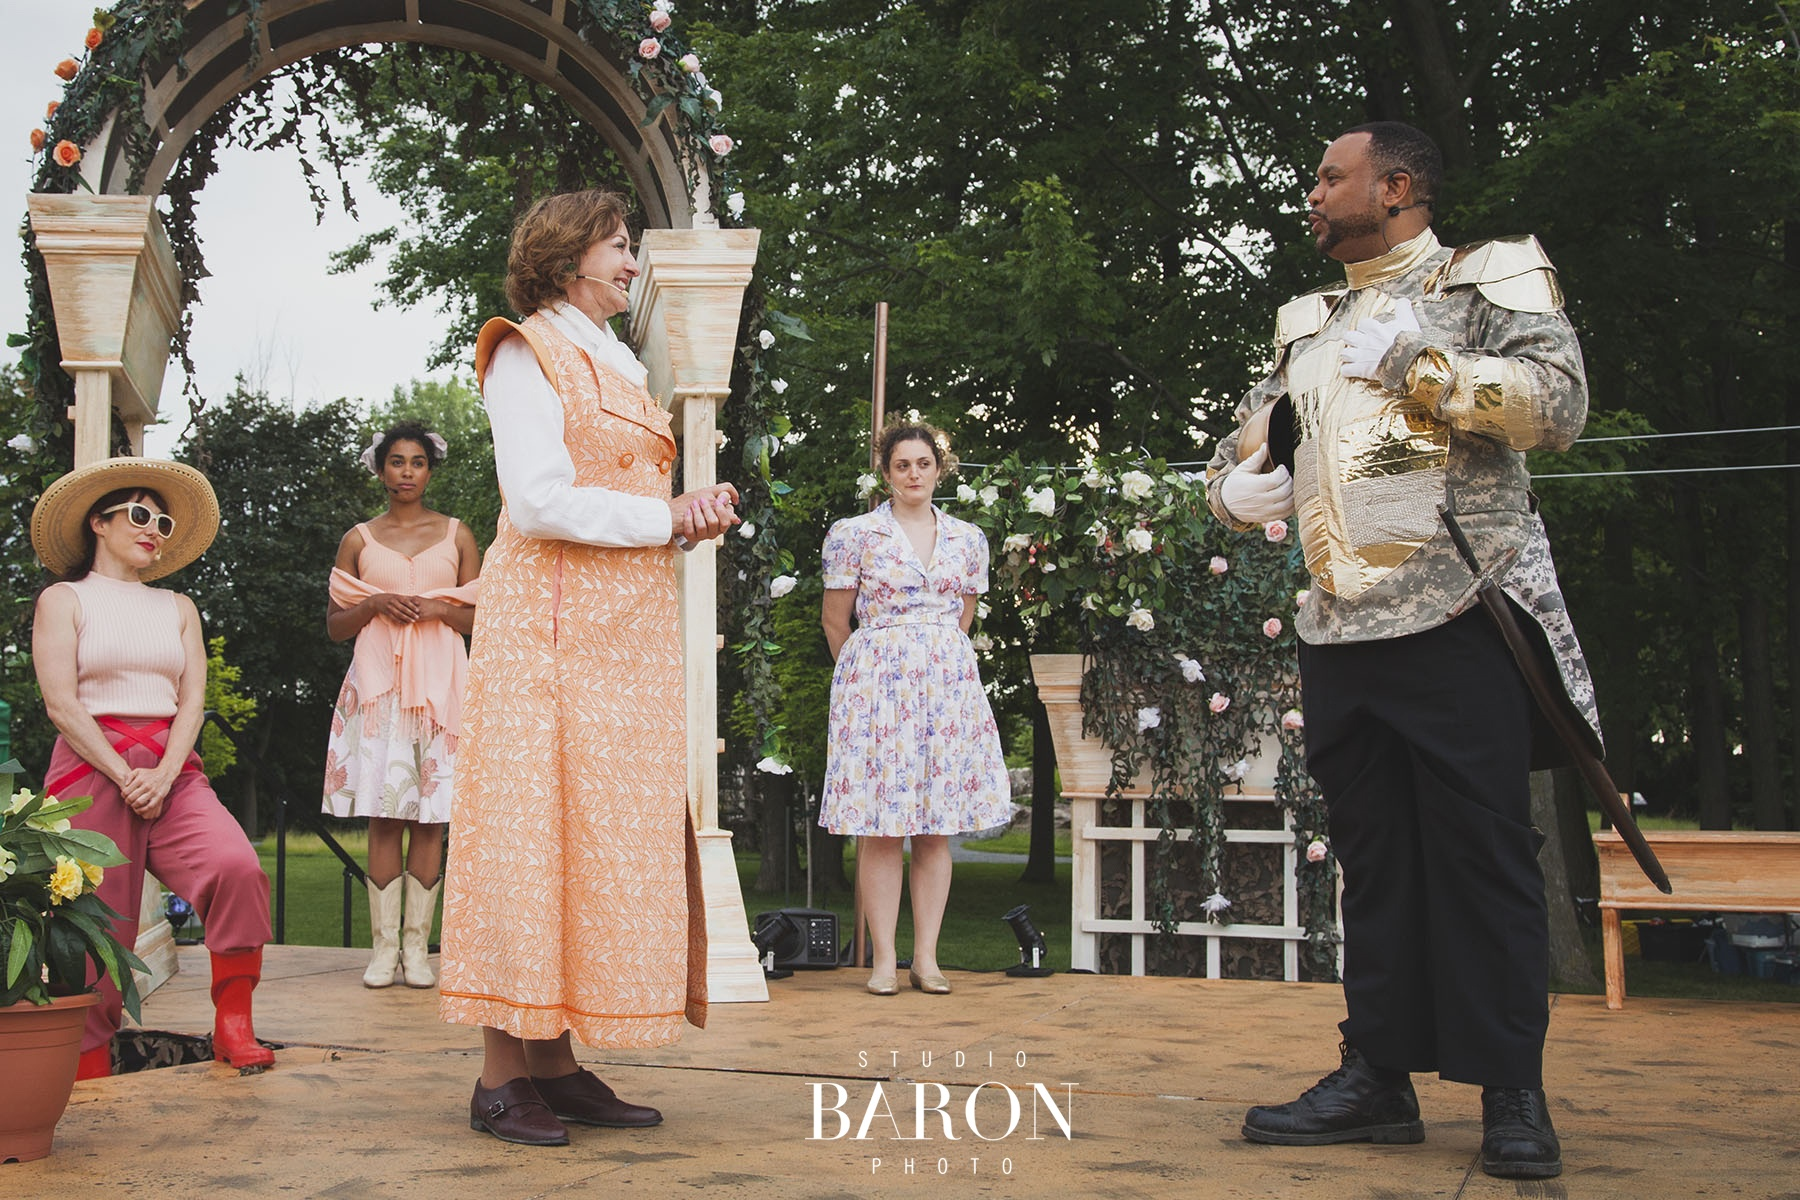 2017 production of 'Much Ado About Nothing' - © Studio Baron Photo